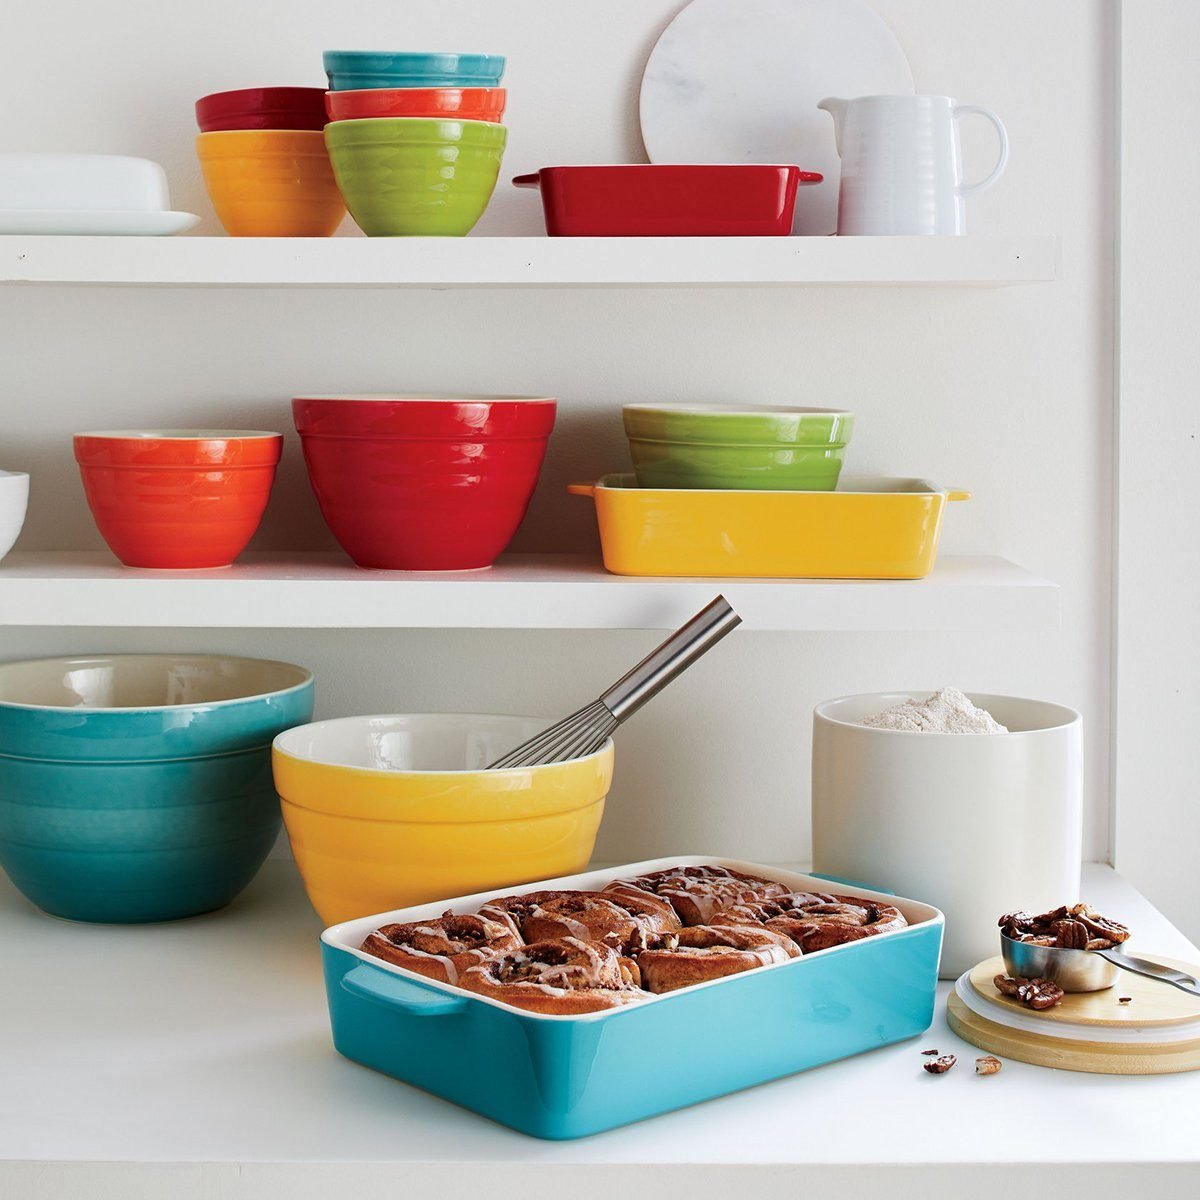 Crate and Barrel bakeware in bright colors